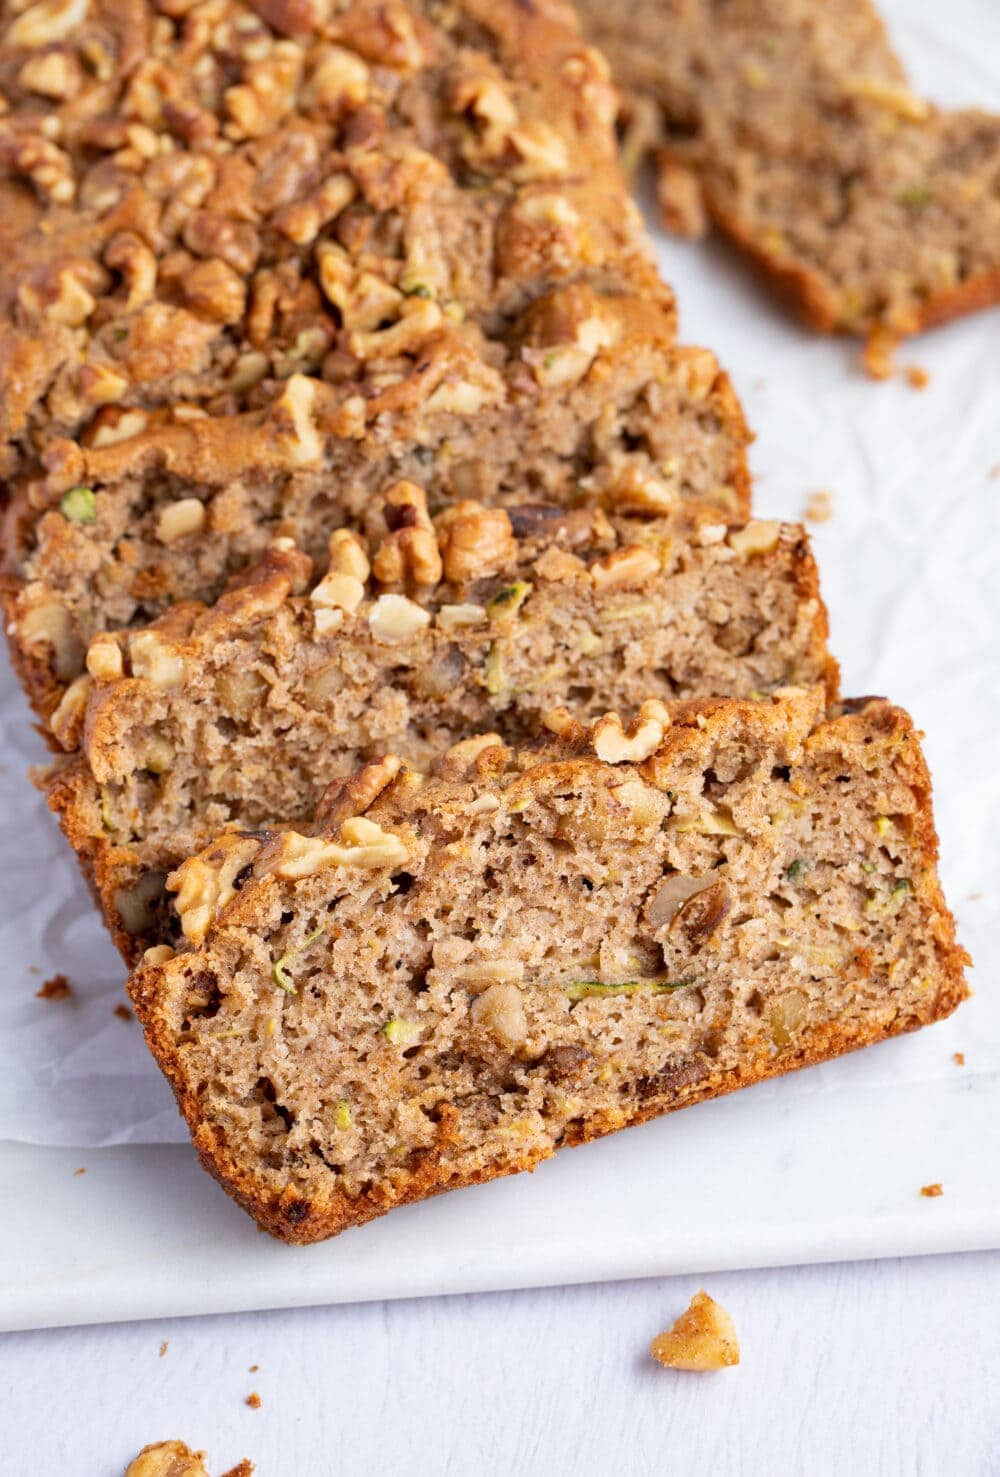 Slices of gluten free zucchini bread angled against each other on a white surface